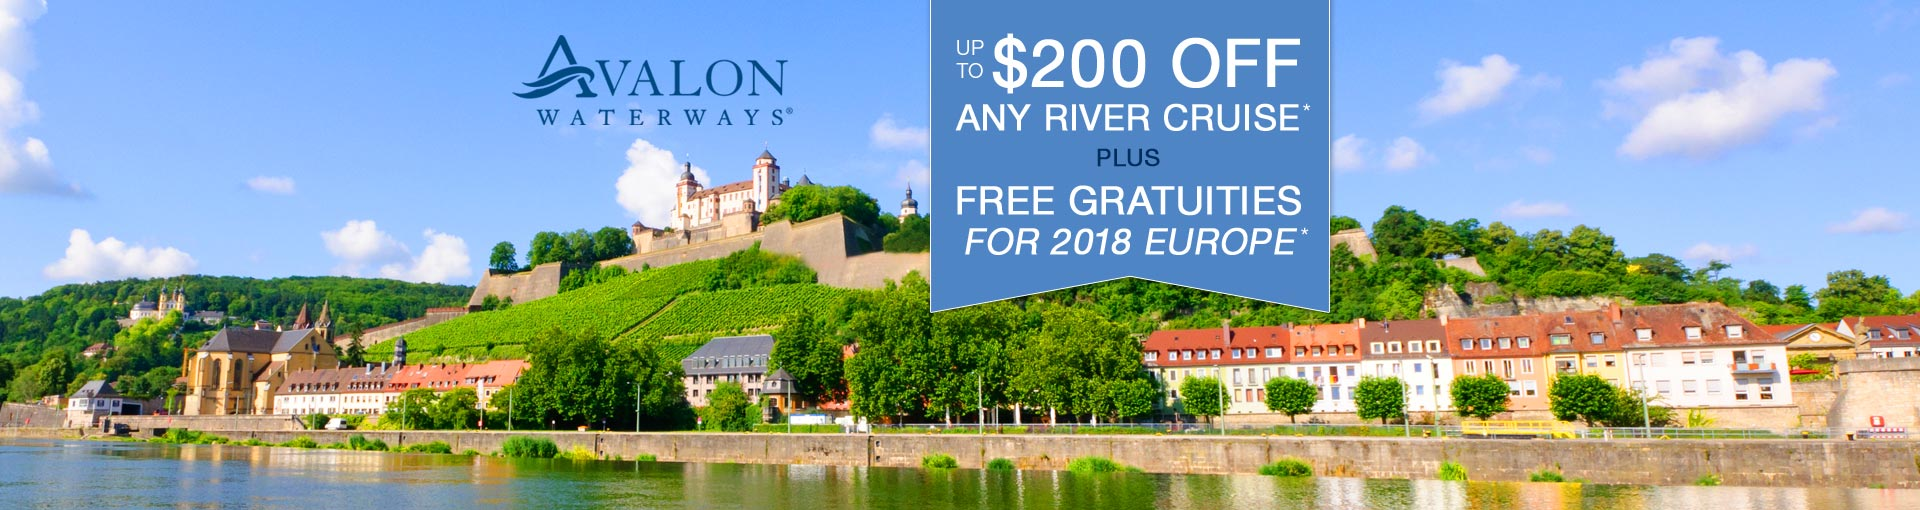 Avalon Waterways - Exclusive Savings Offer